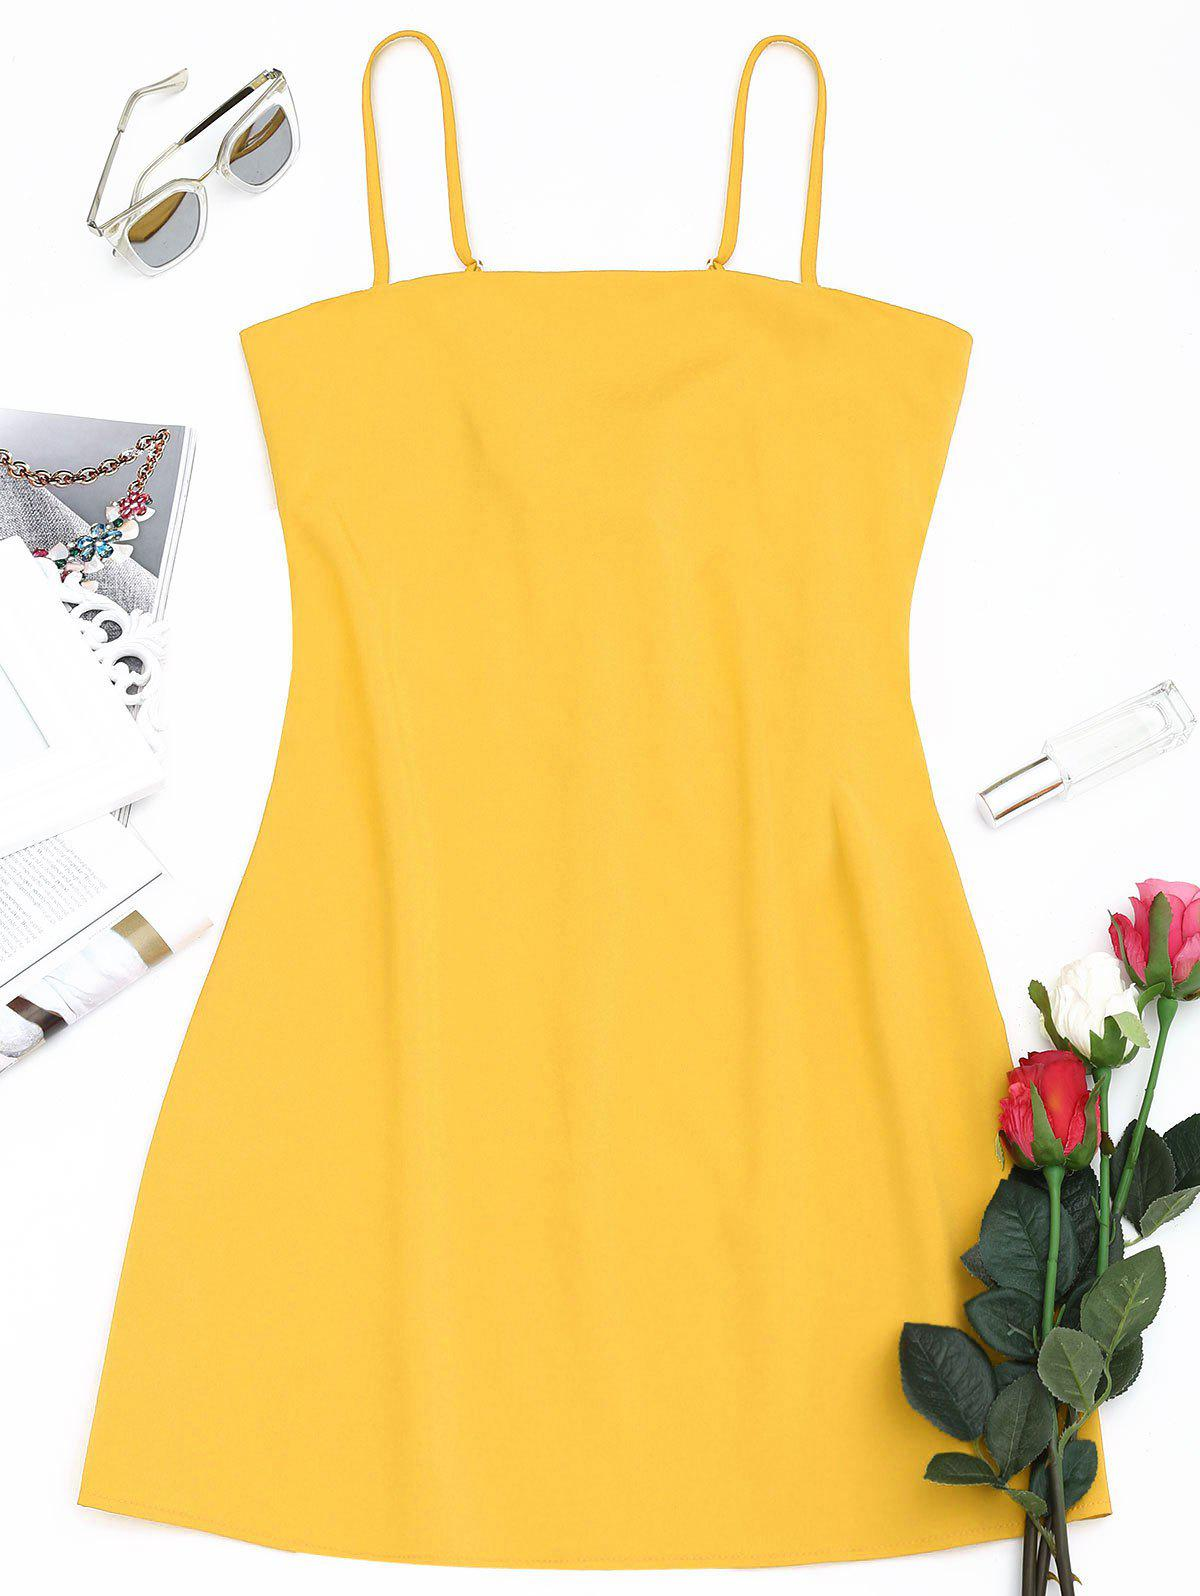 Tied Bowknot Back Mini Spaghetti Strap Dress - YELLOW M